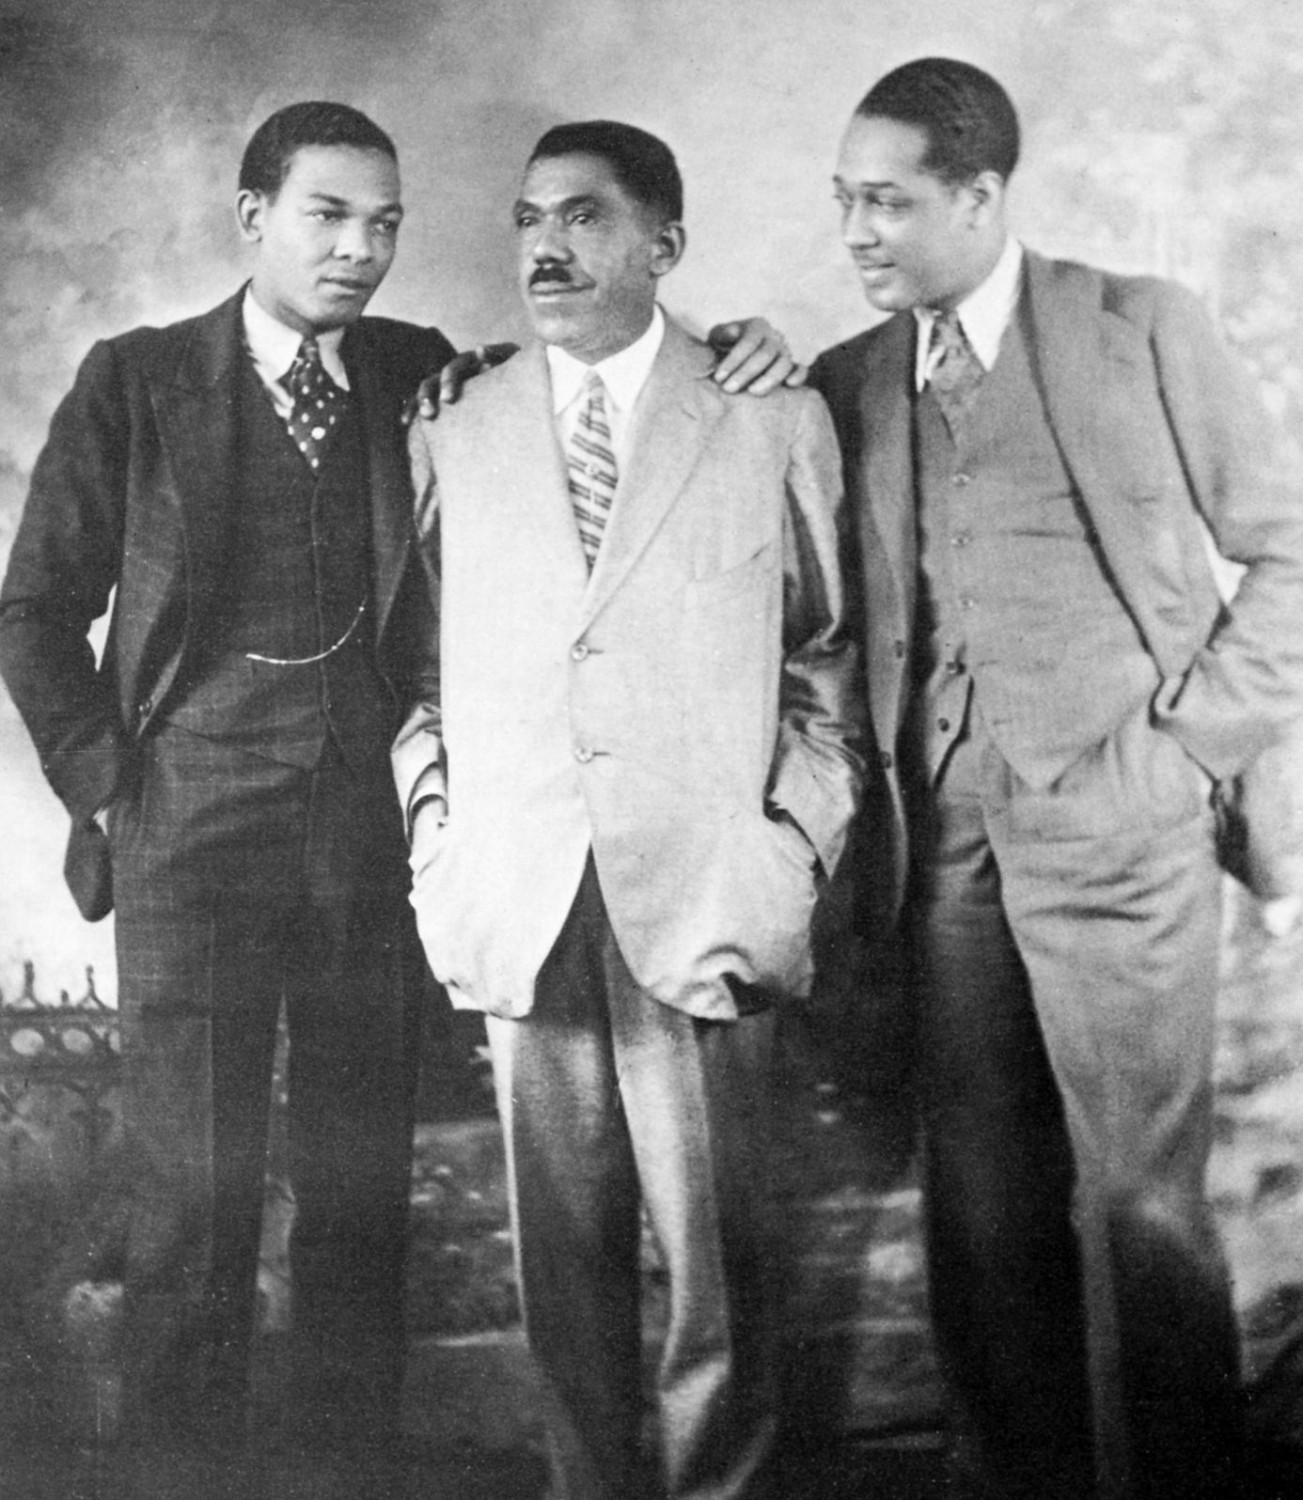 p.37, Fred Guy, James E. Ellington & Duke Ellington, X, Coll Philippe Baudoin